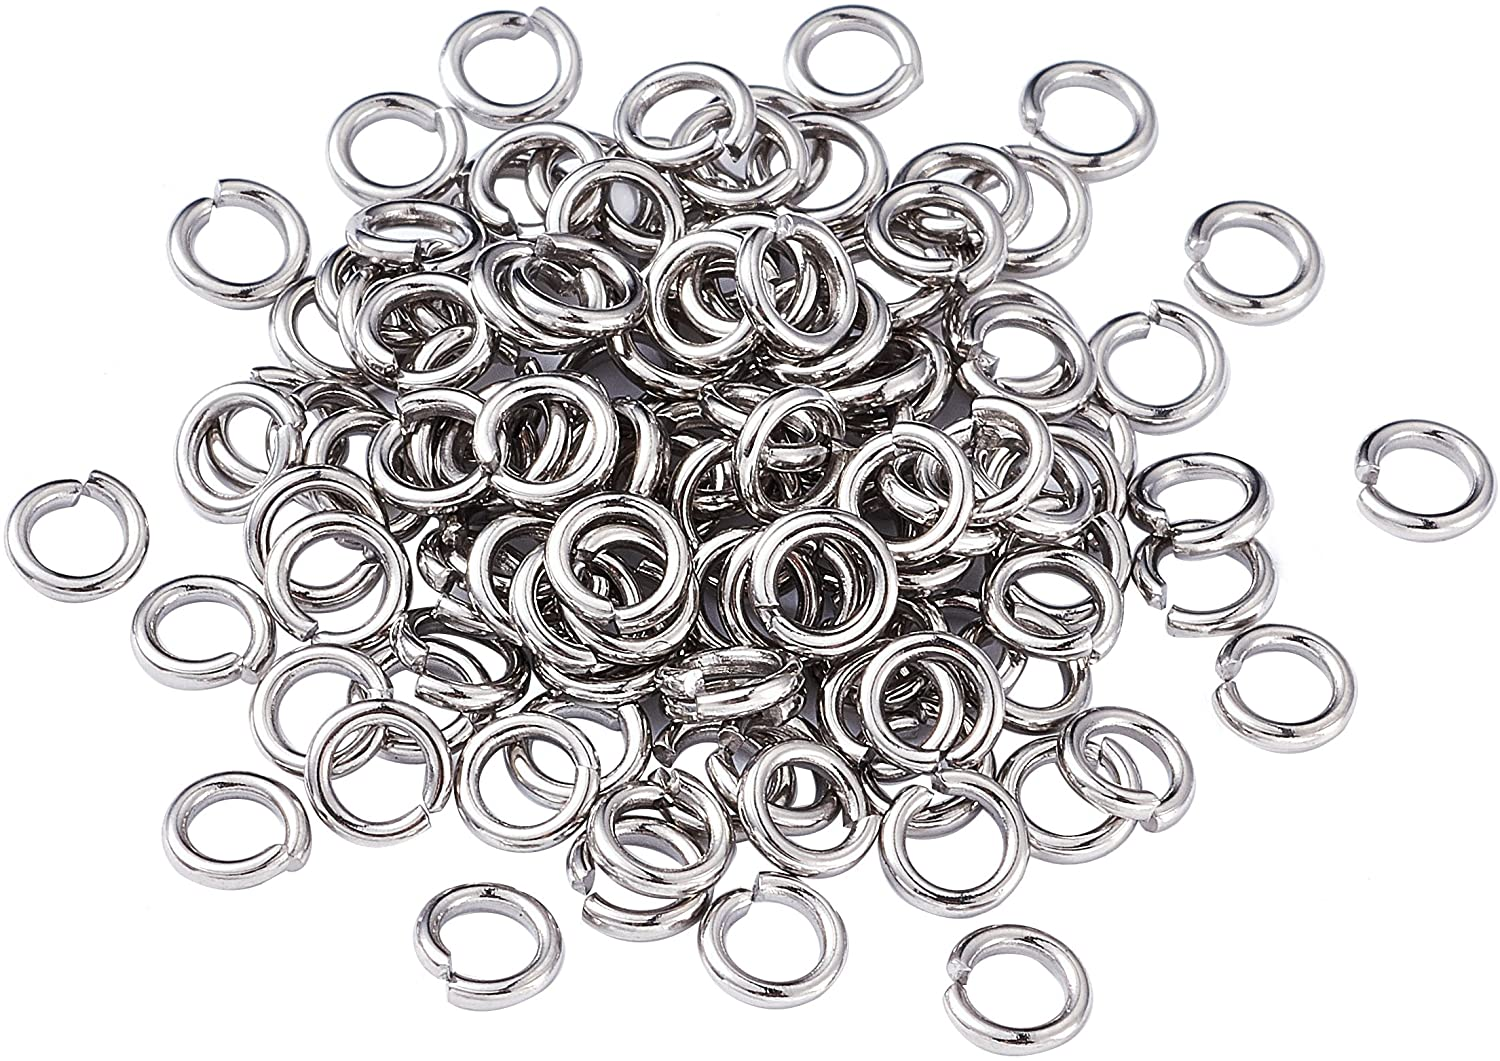 Kissity 2000Pcs 4mm Stainless Steel Open Jump Rings Connectors 0.8mm Thick Chainmail Making Jewelry Findings